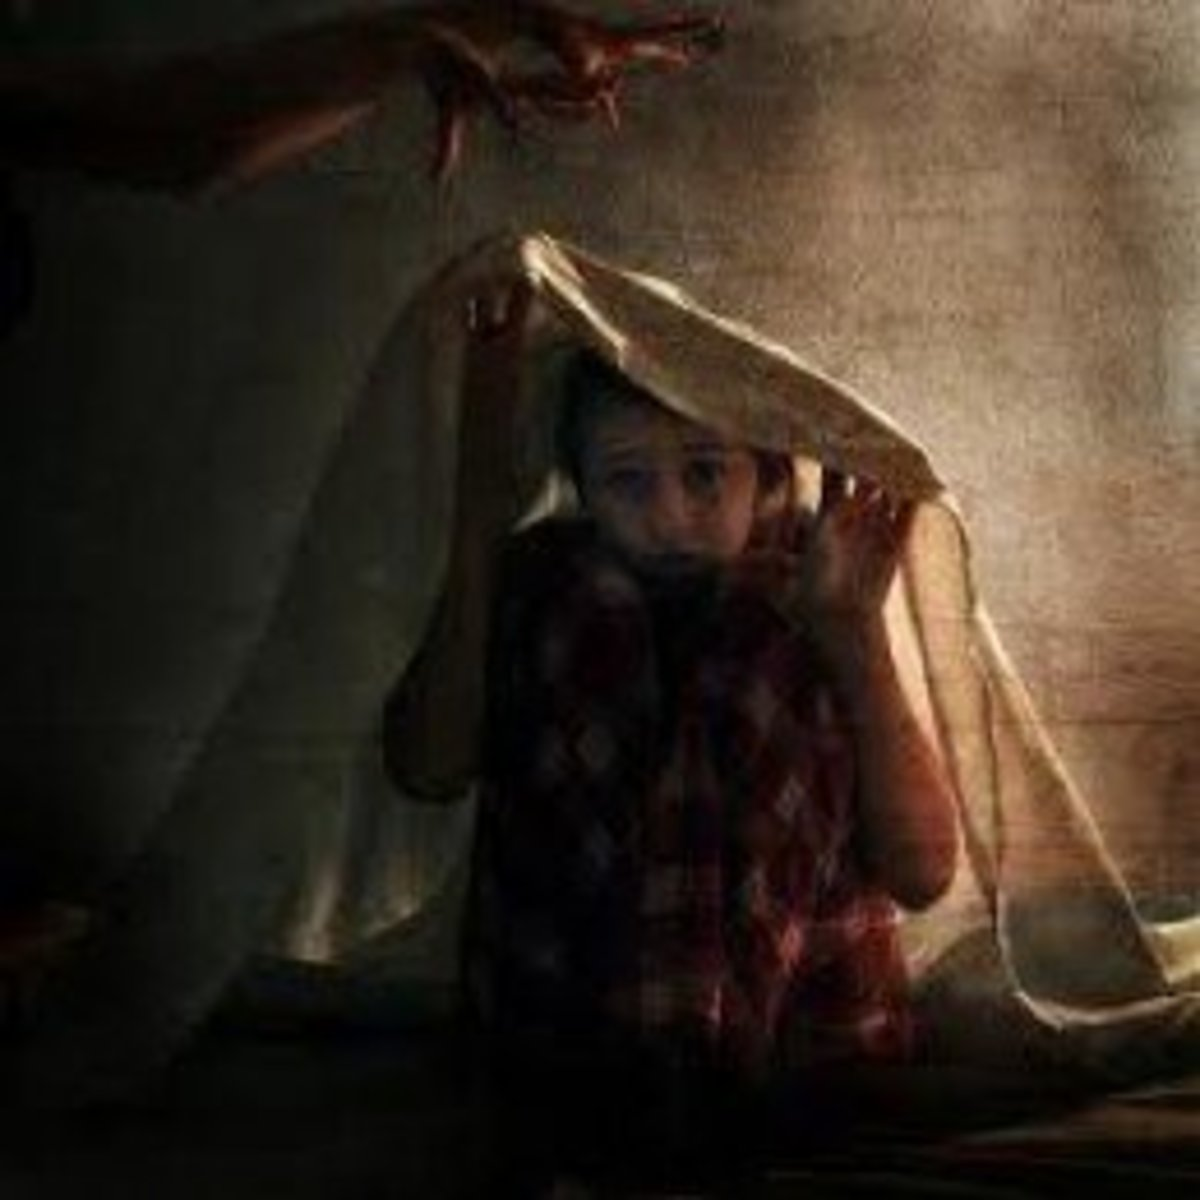 The dark seems DANGEROUS for some people for natural &/or supermatural reasons.There are those who won't go out at night or during dark times because of crime. People tend to let their imaginations get THE BEST of them in the dark.